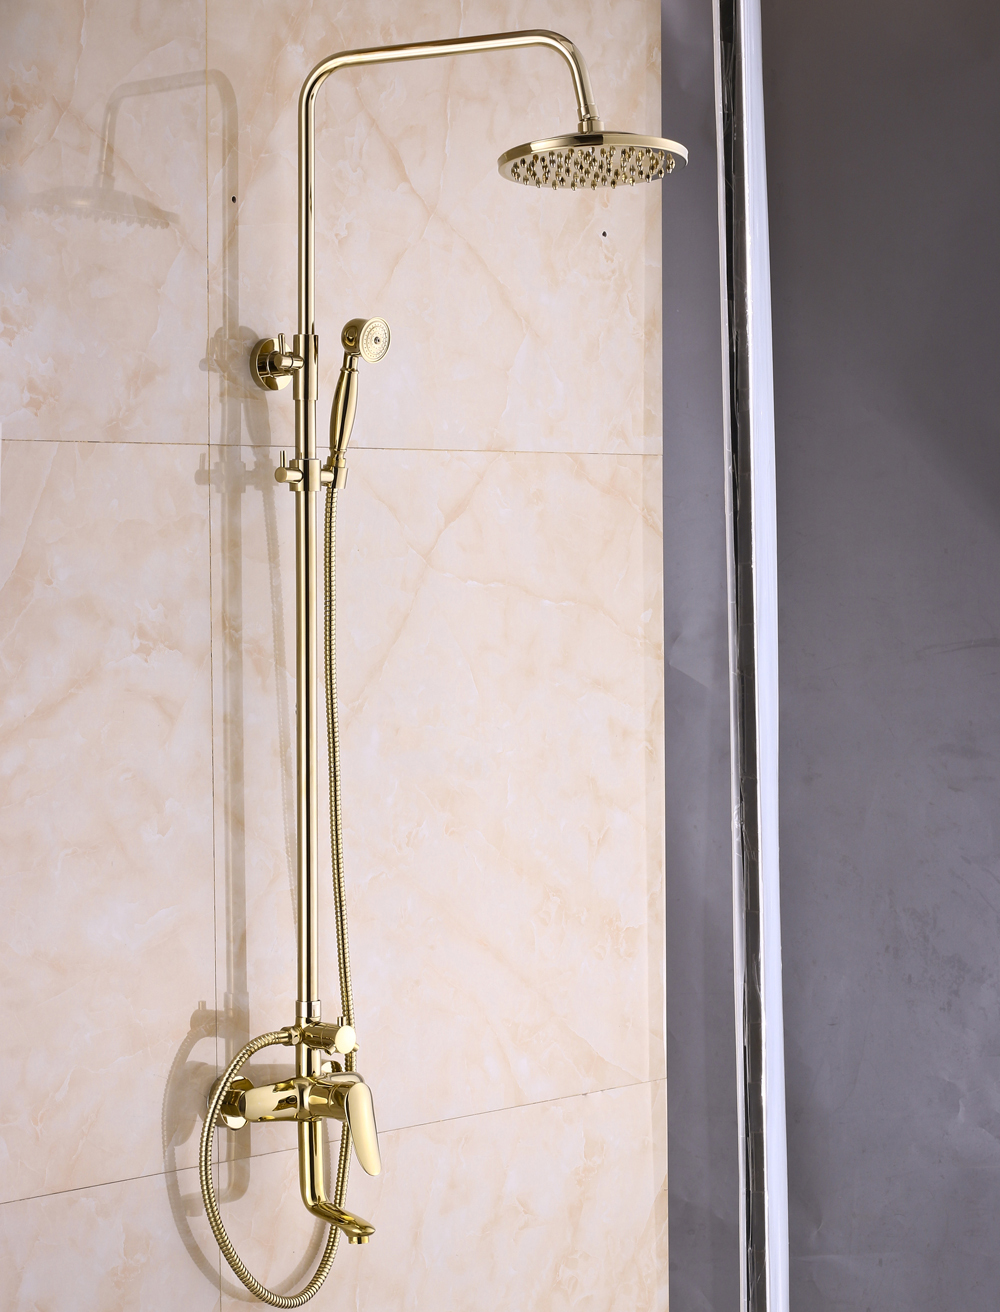 Rainfall Gold Brass Shower Faucet Set 8 inch Shower Head + ...